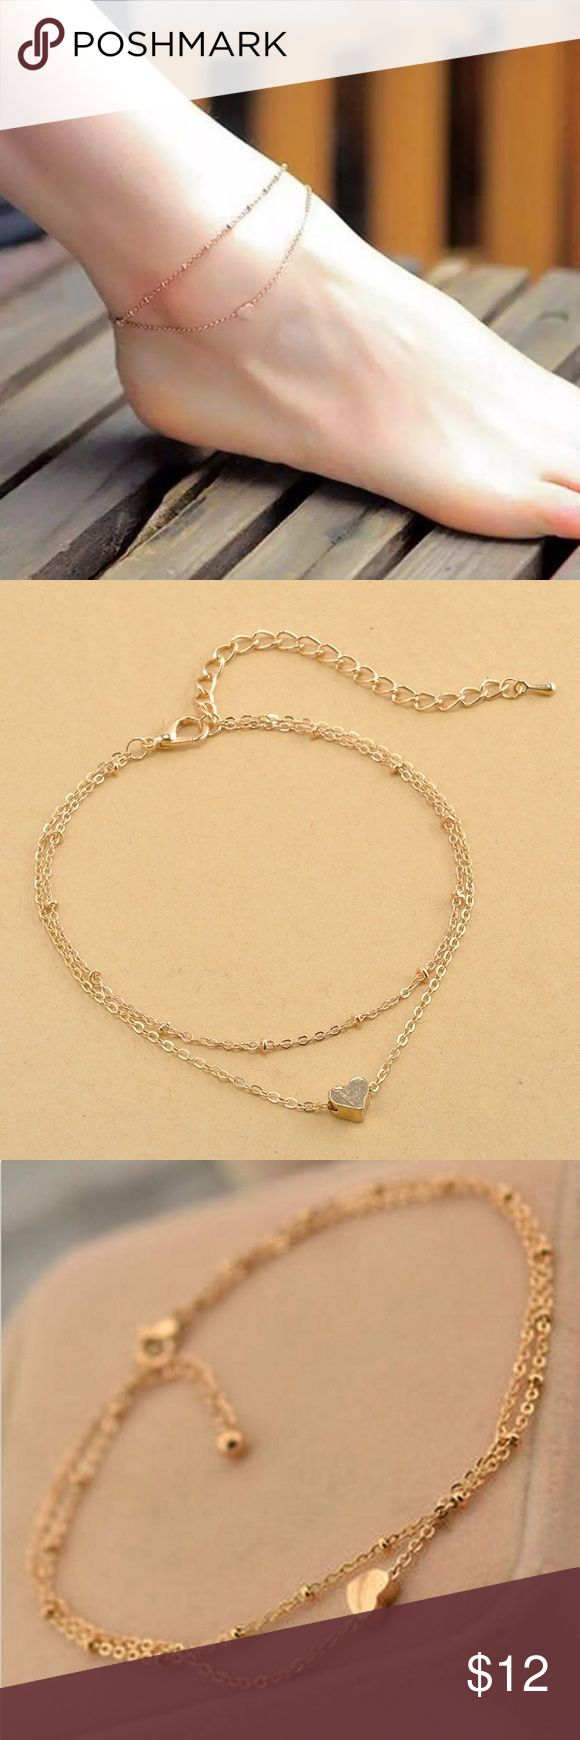 Cute Heart Anklet Adorable Gold Heart Anklet-27cm in length (adjustable) Jewelry